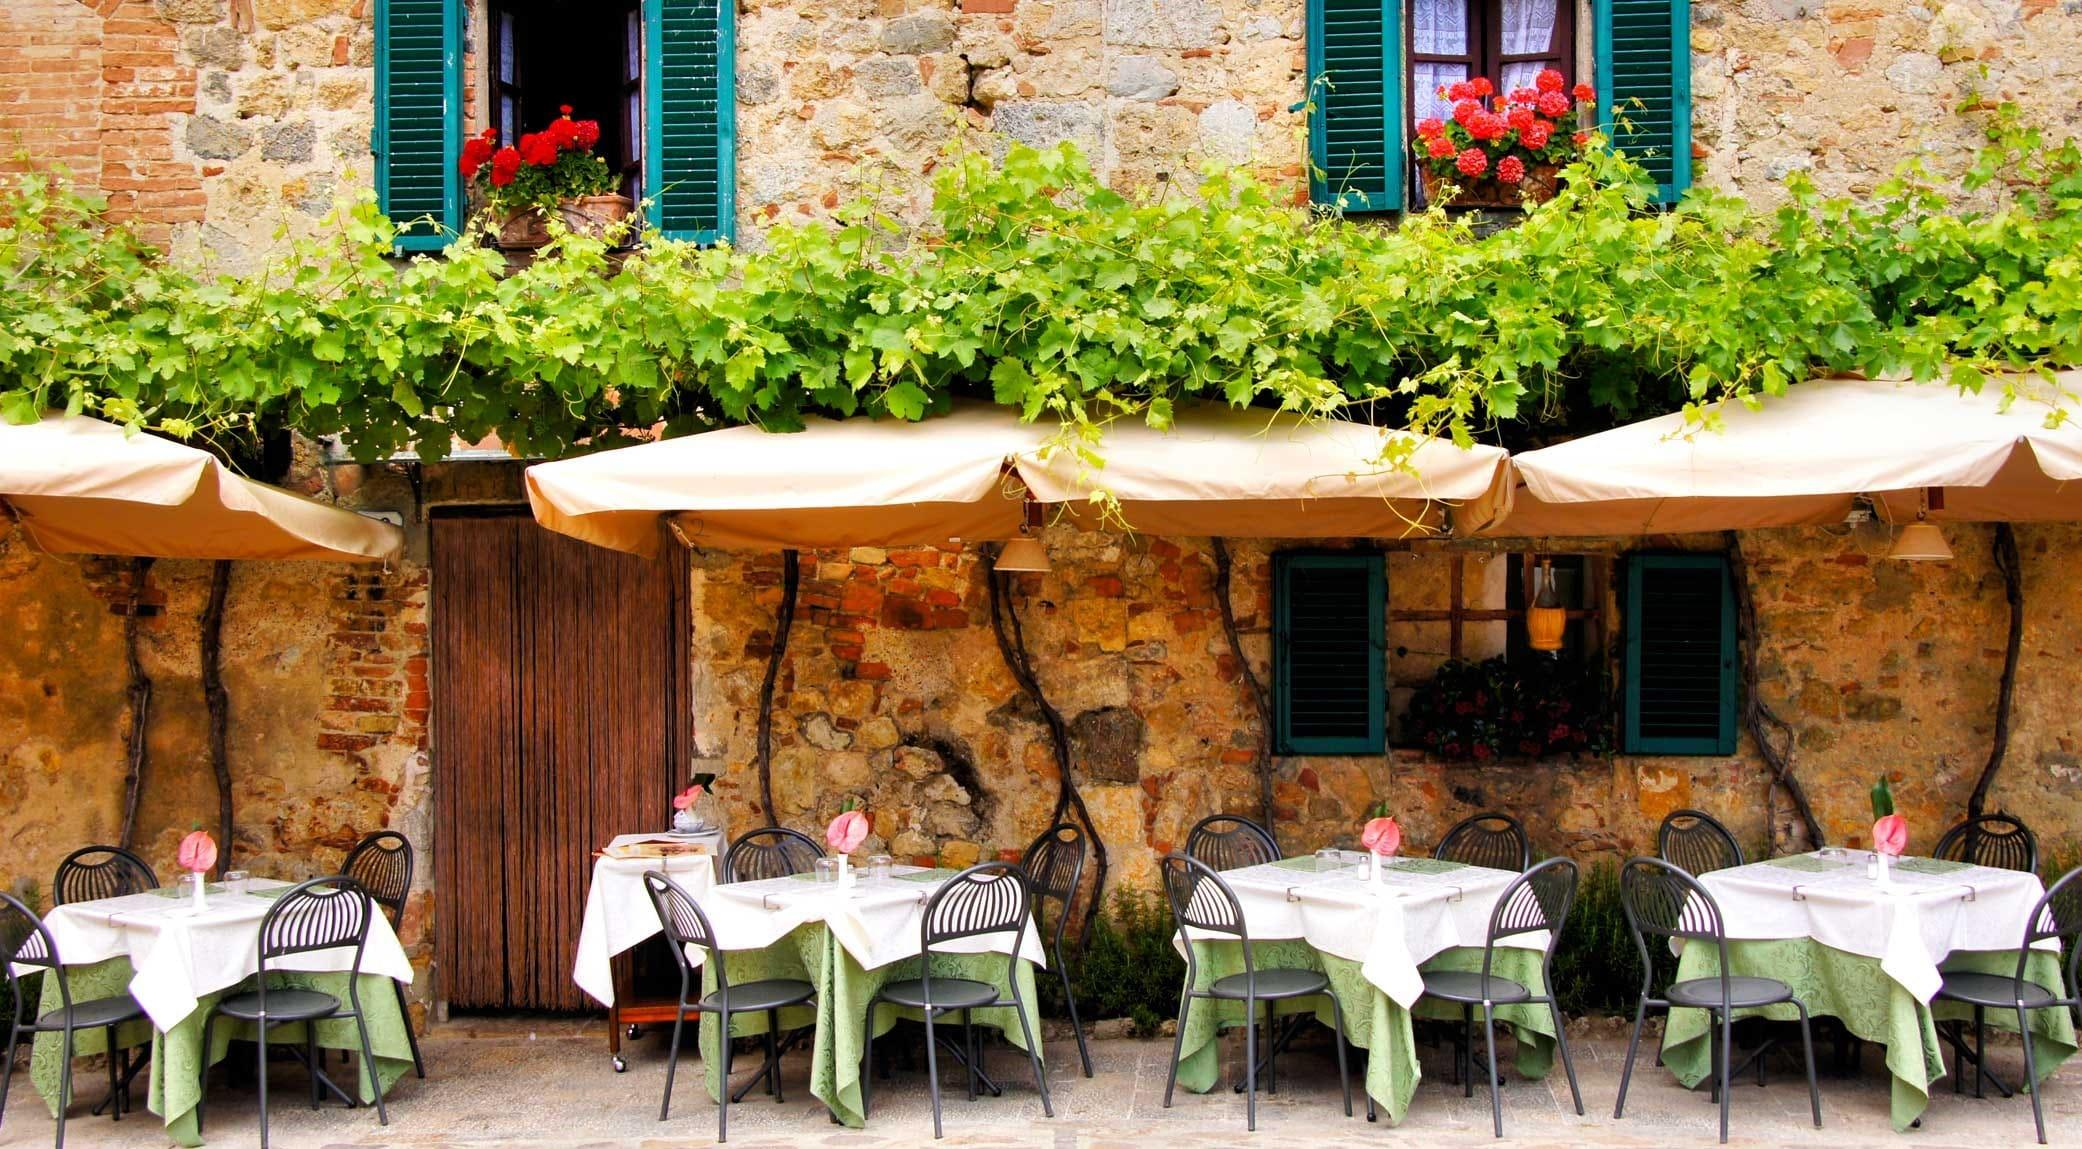 original_007-restaurant-finedininglovers.jpg